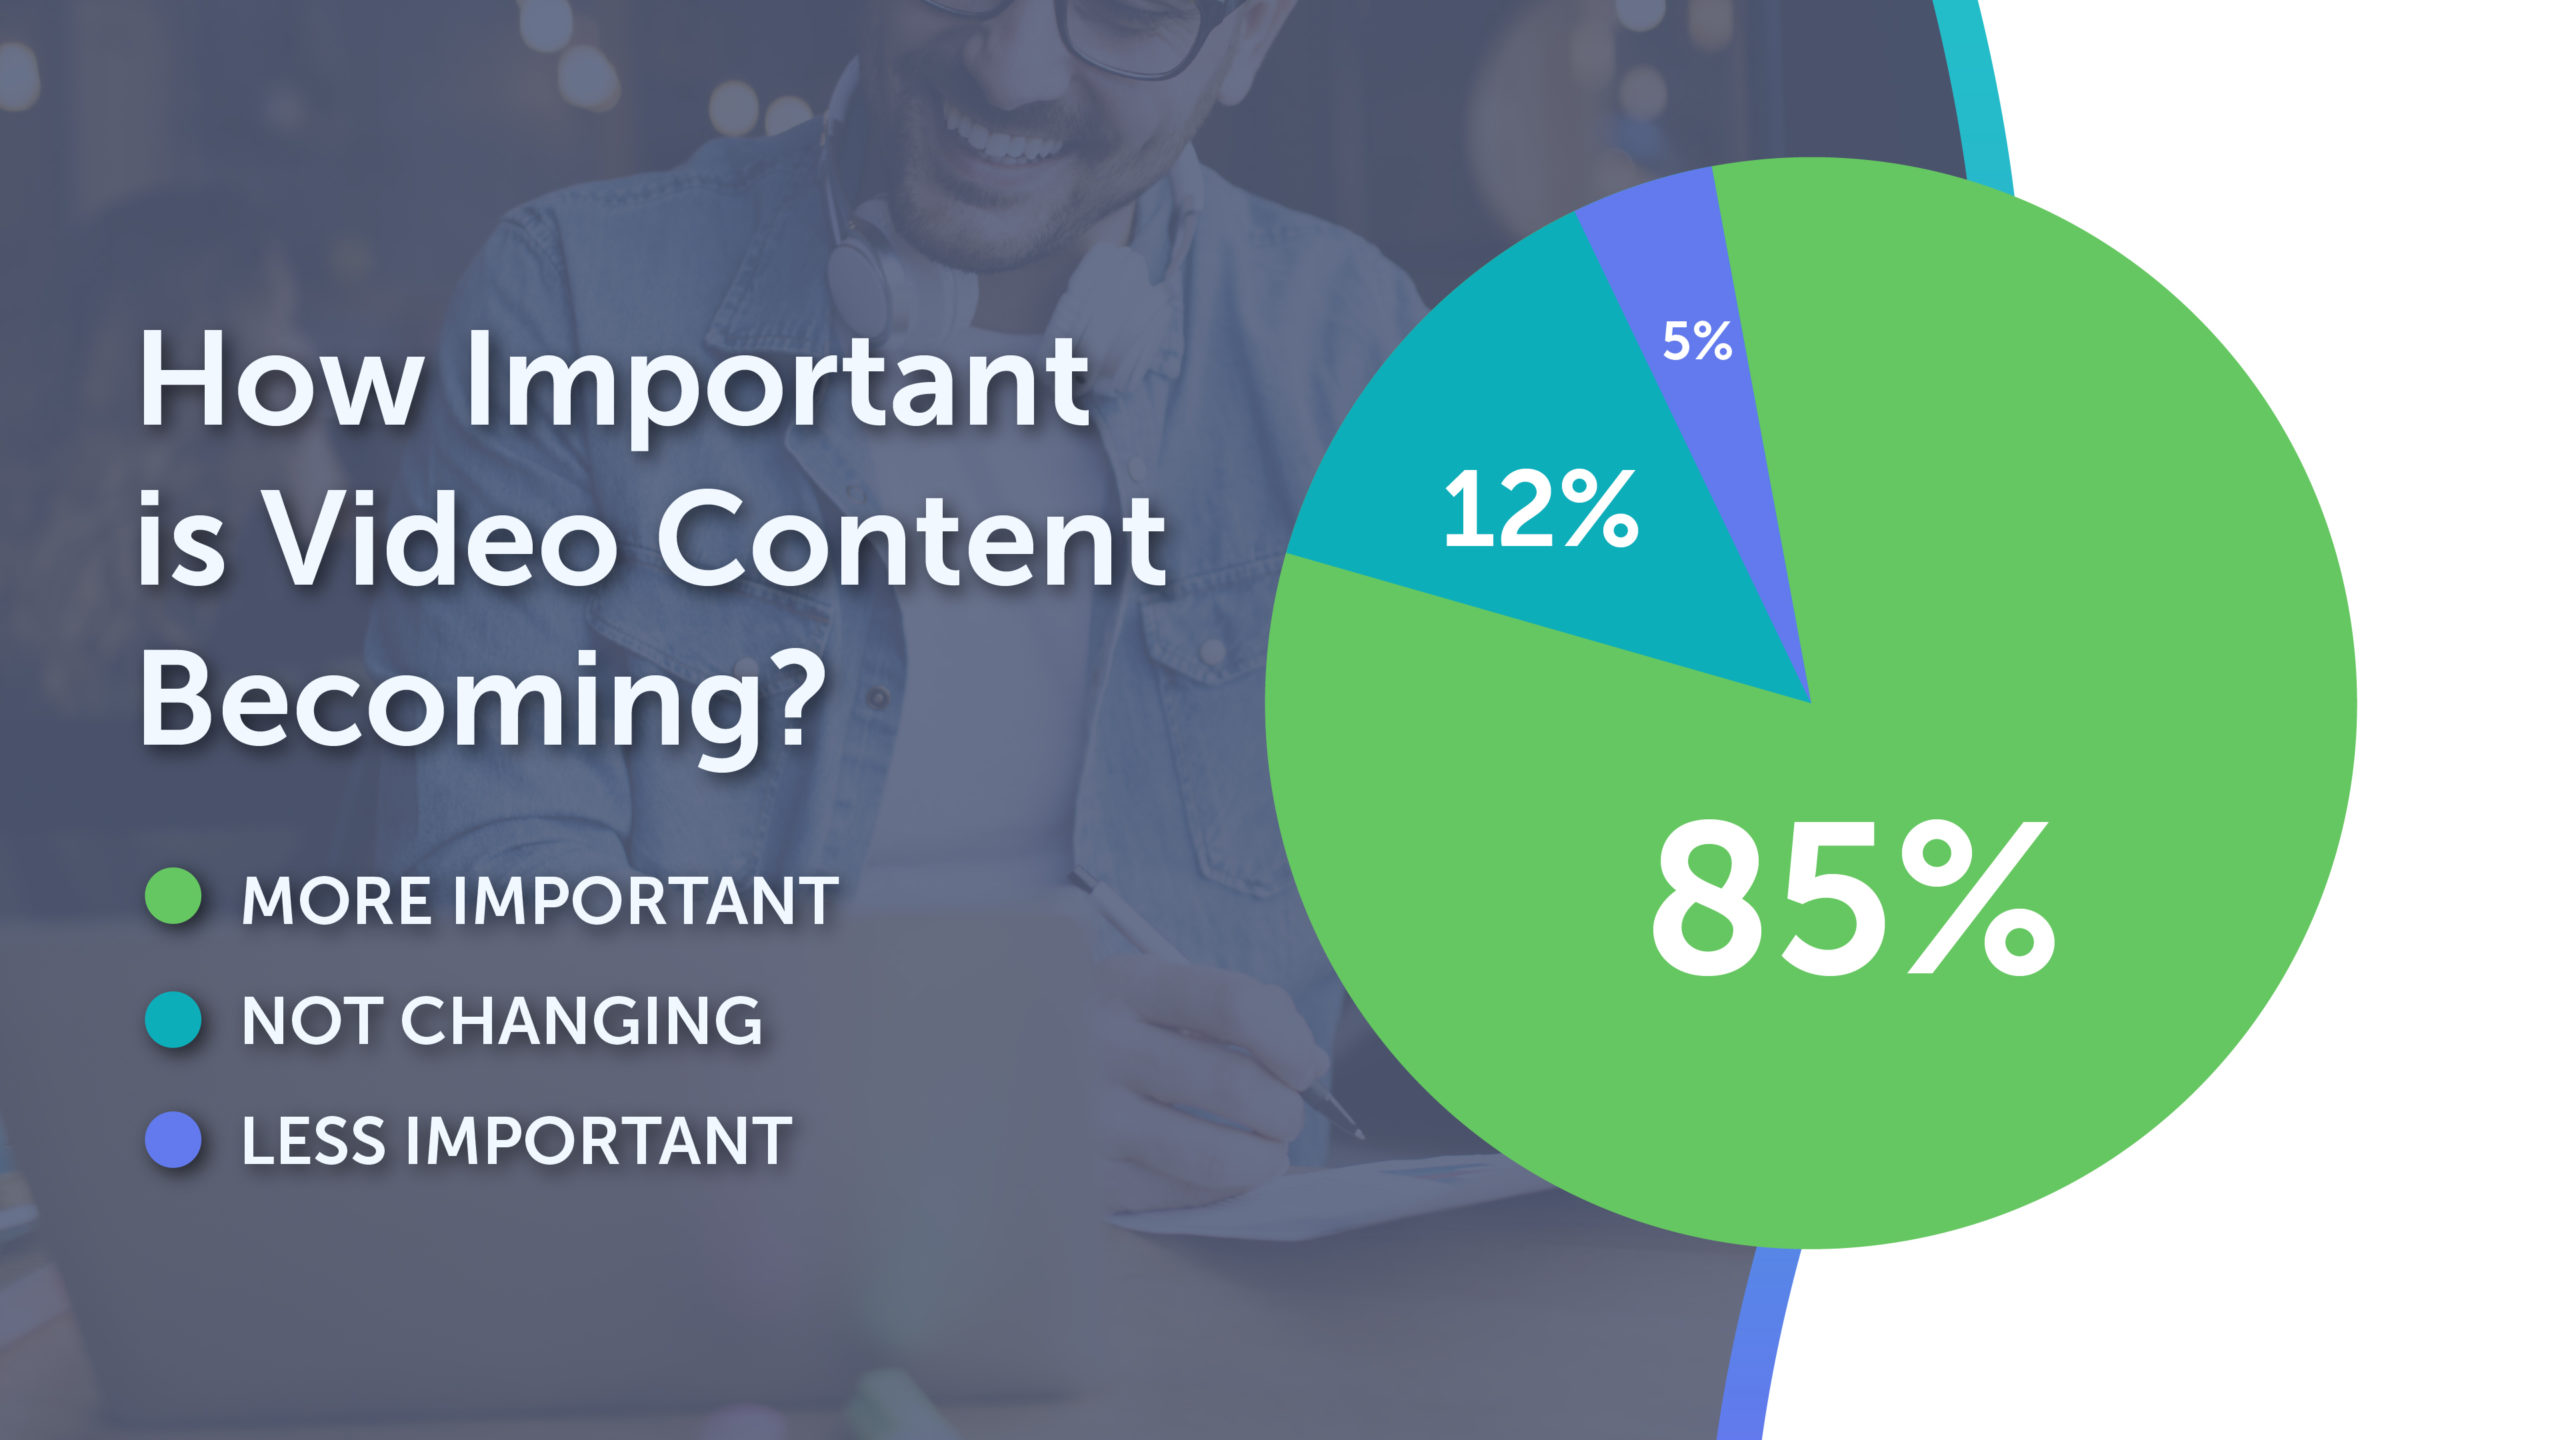 How Important is Video Content